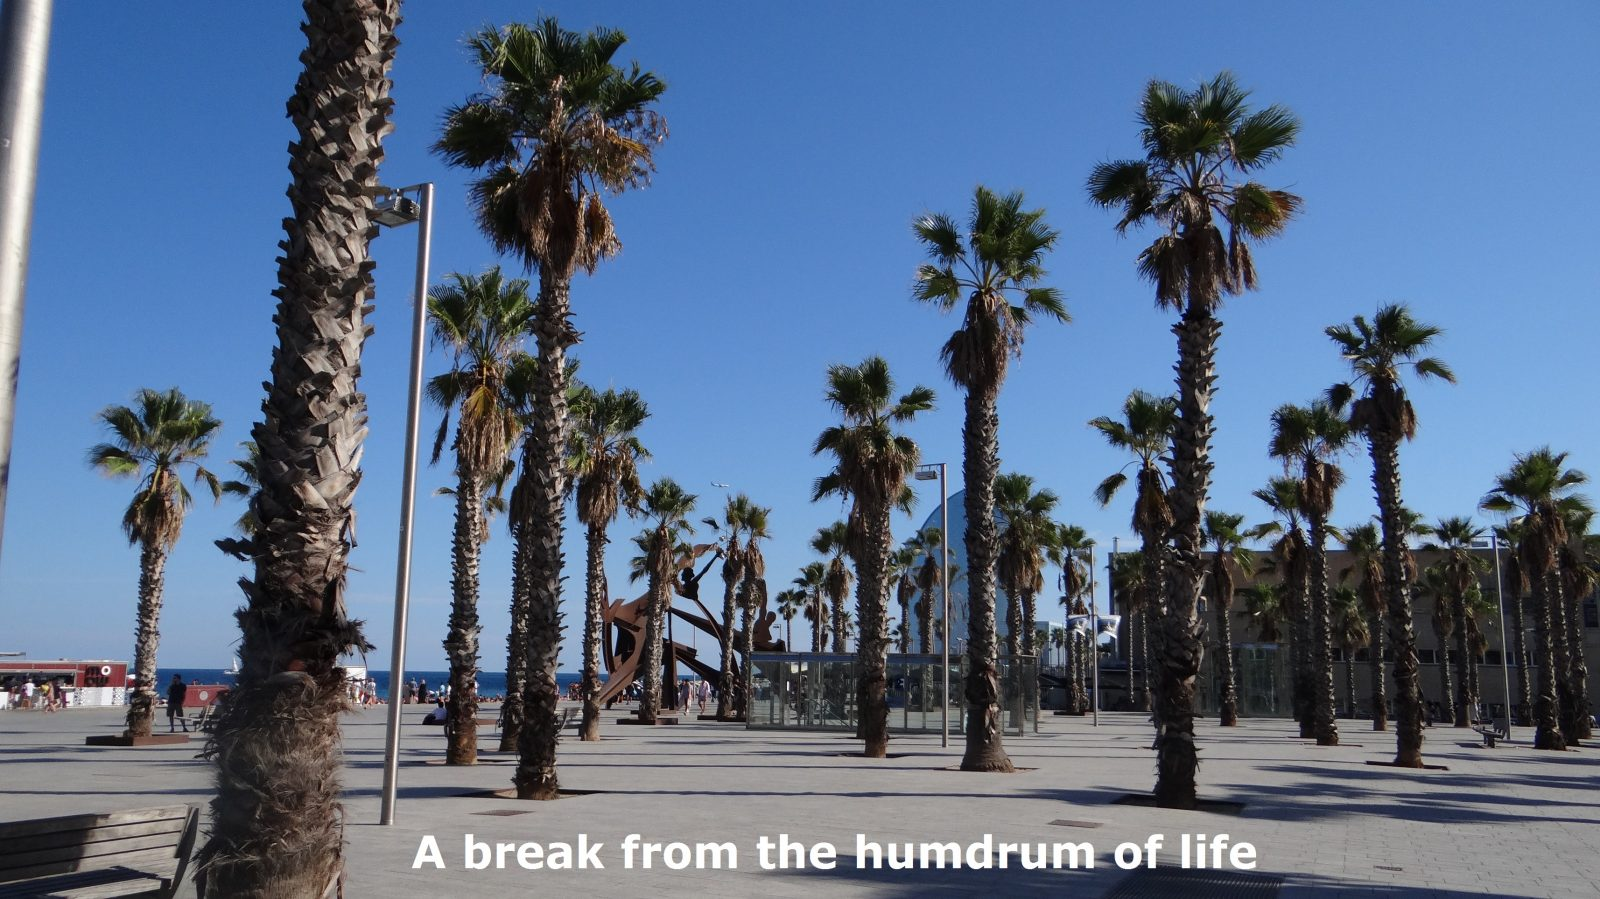 A break from the humdrum of life